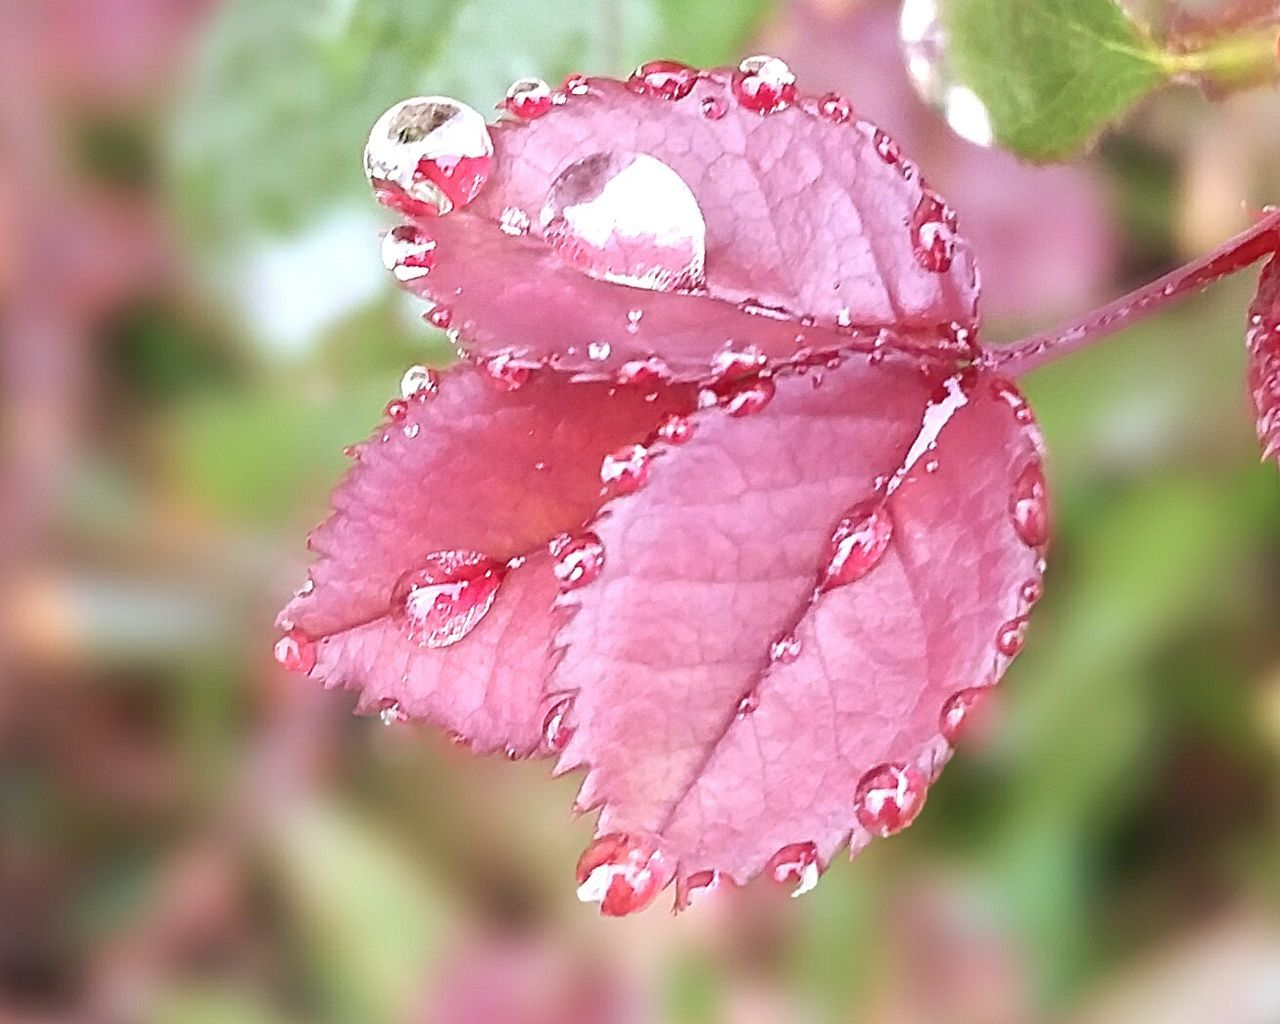 drop, water, nature, fragility, beauty in nature, wet, flower, petal, growth, freshness, close-up, focus on foreground, rose - flower, day, pink color, raindrop, no people, leaf, red, flower head, outdoors, blooming, periwinkle